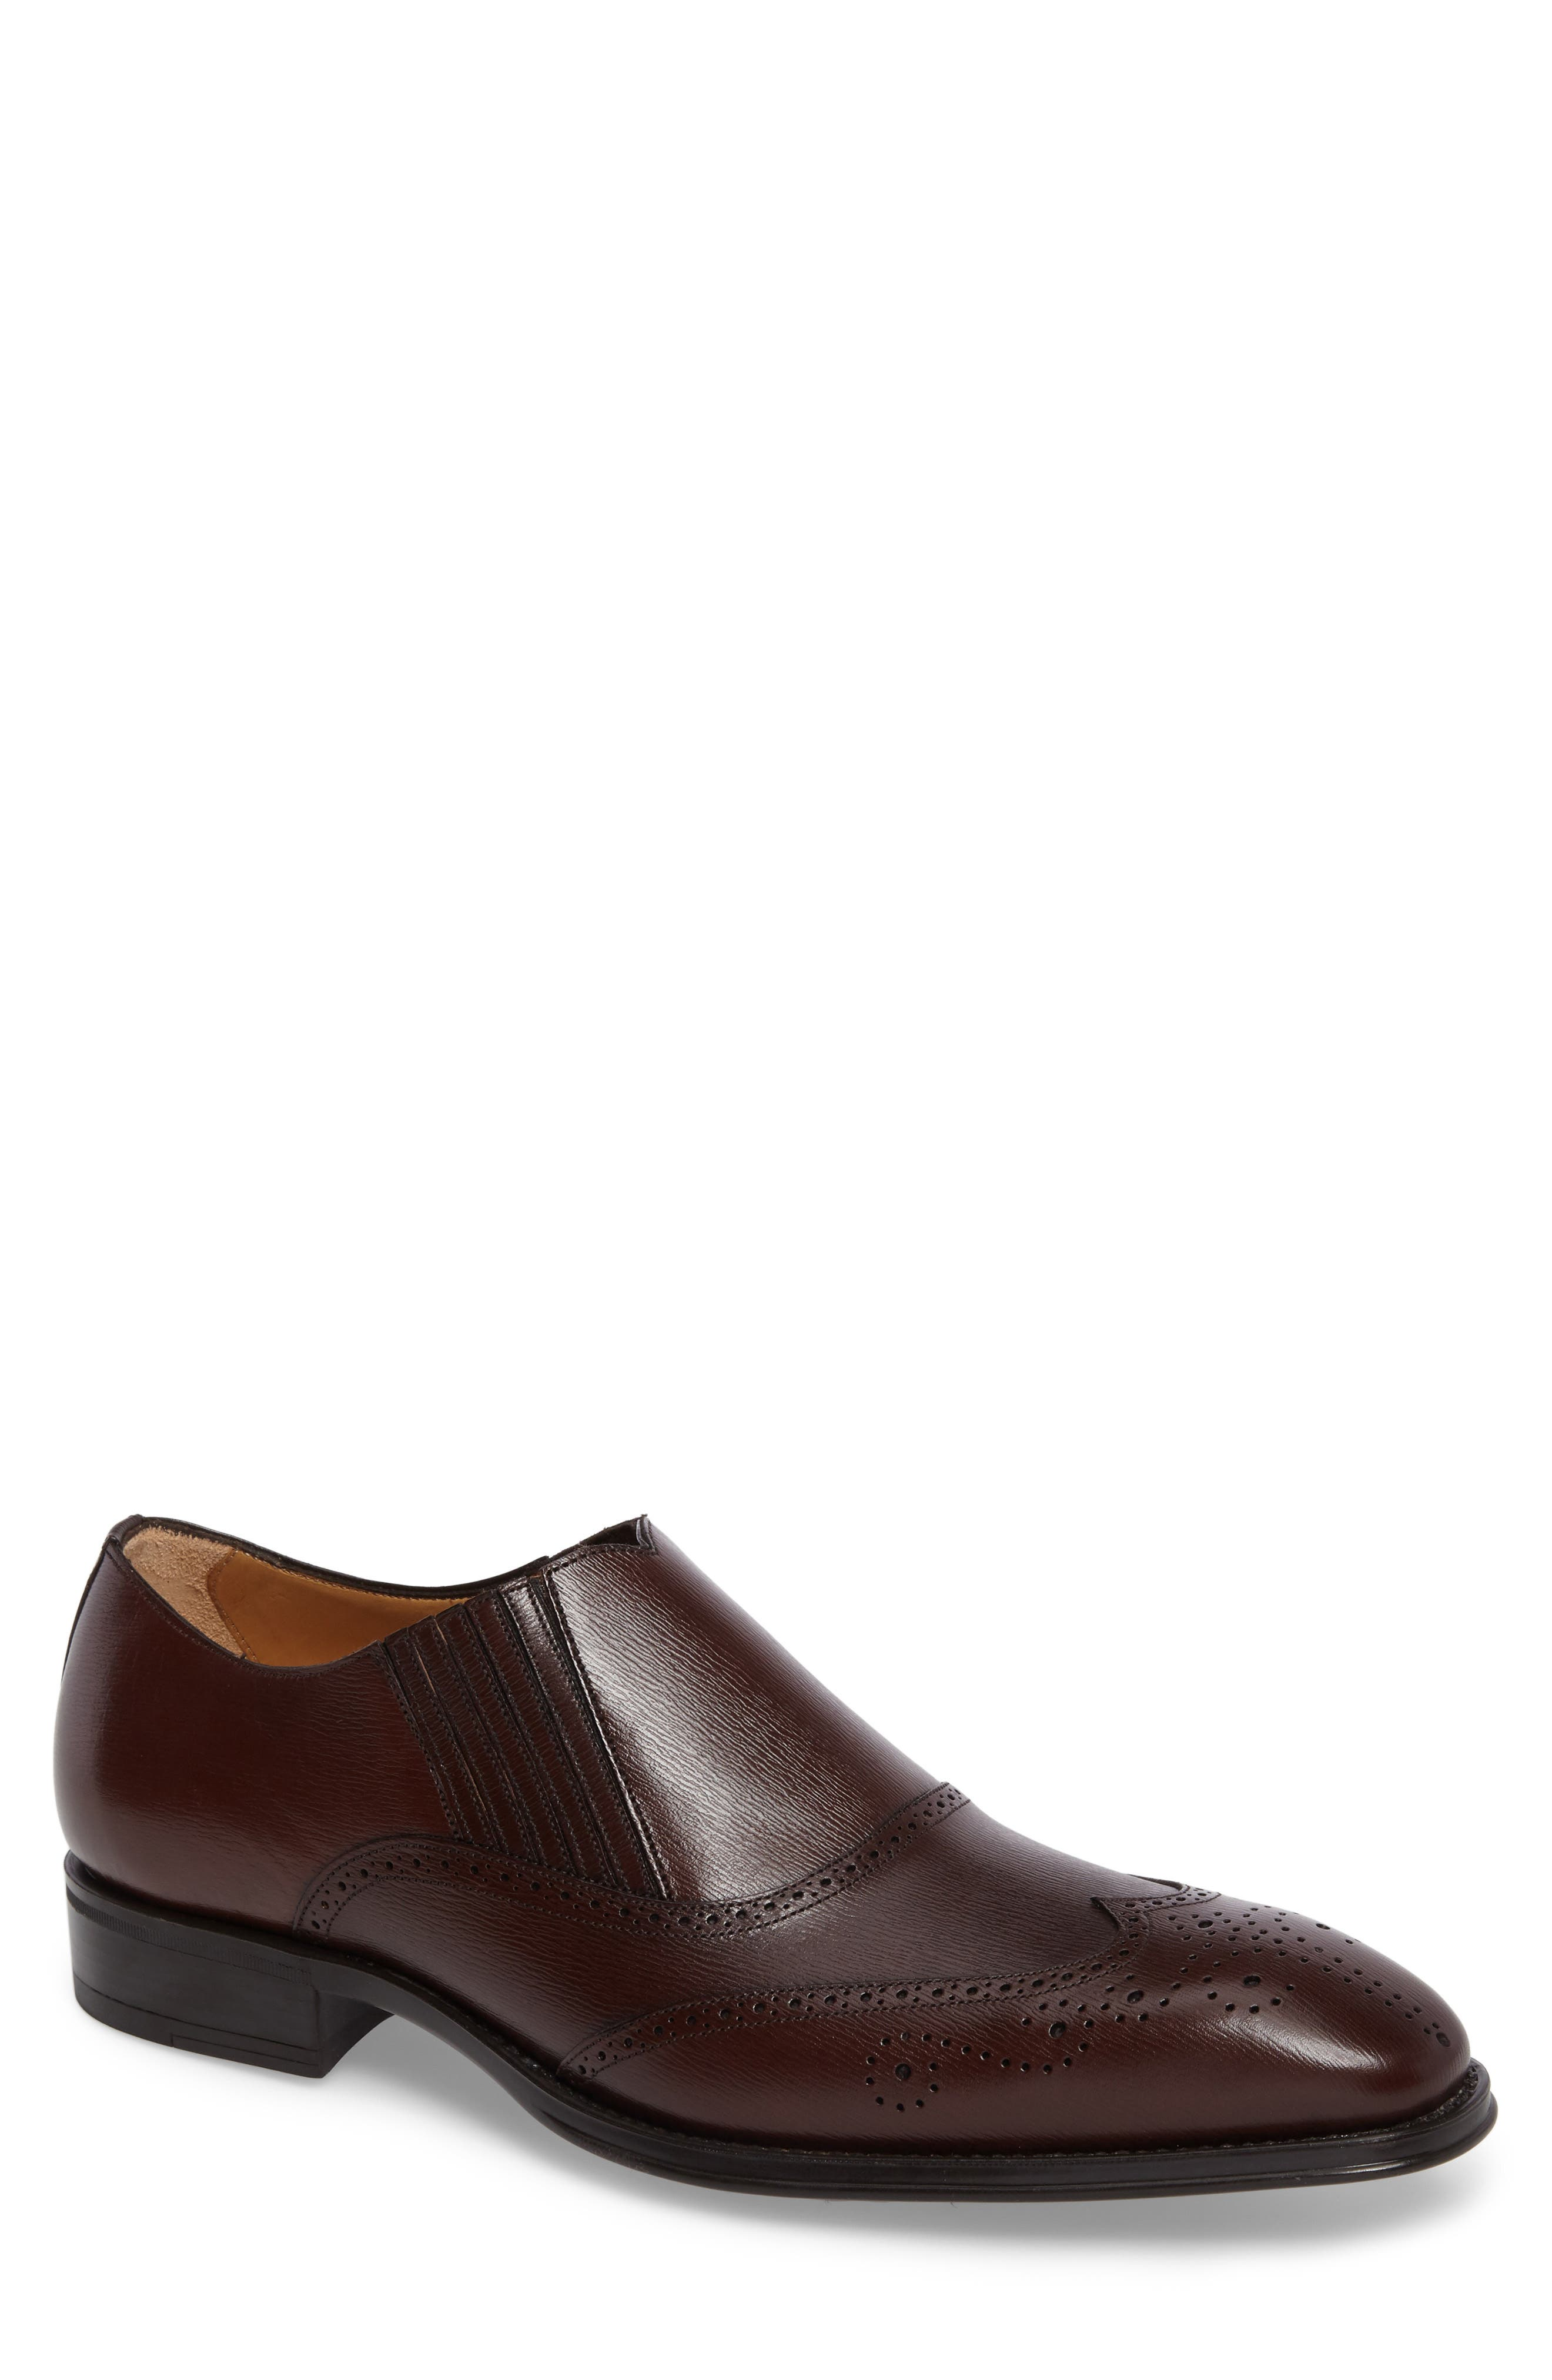 Main Image - Mezlan Rioja Venetian Loafer (Men)